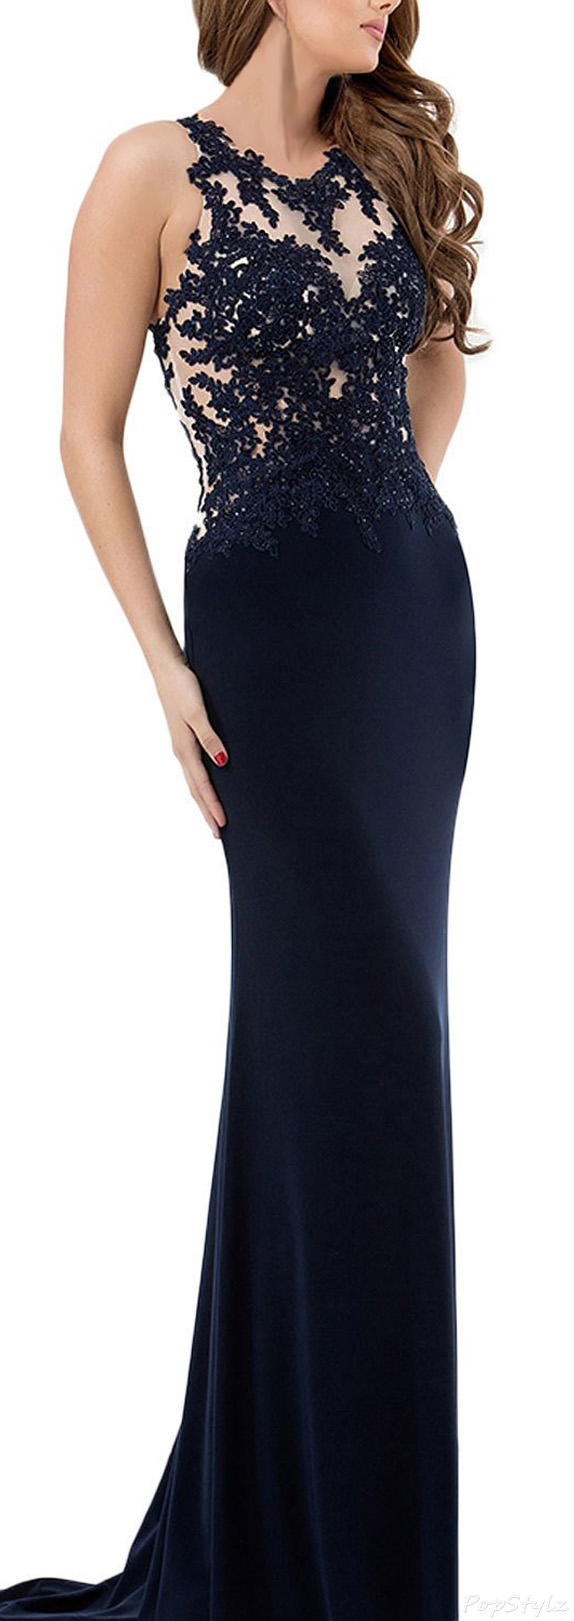 LovingDress Scoop Sheath with Applique Evening Dress